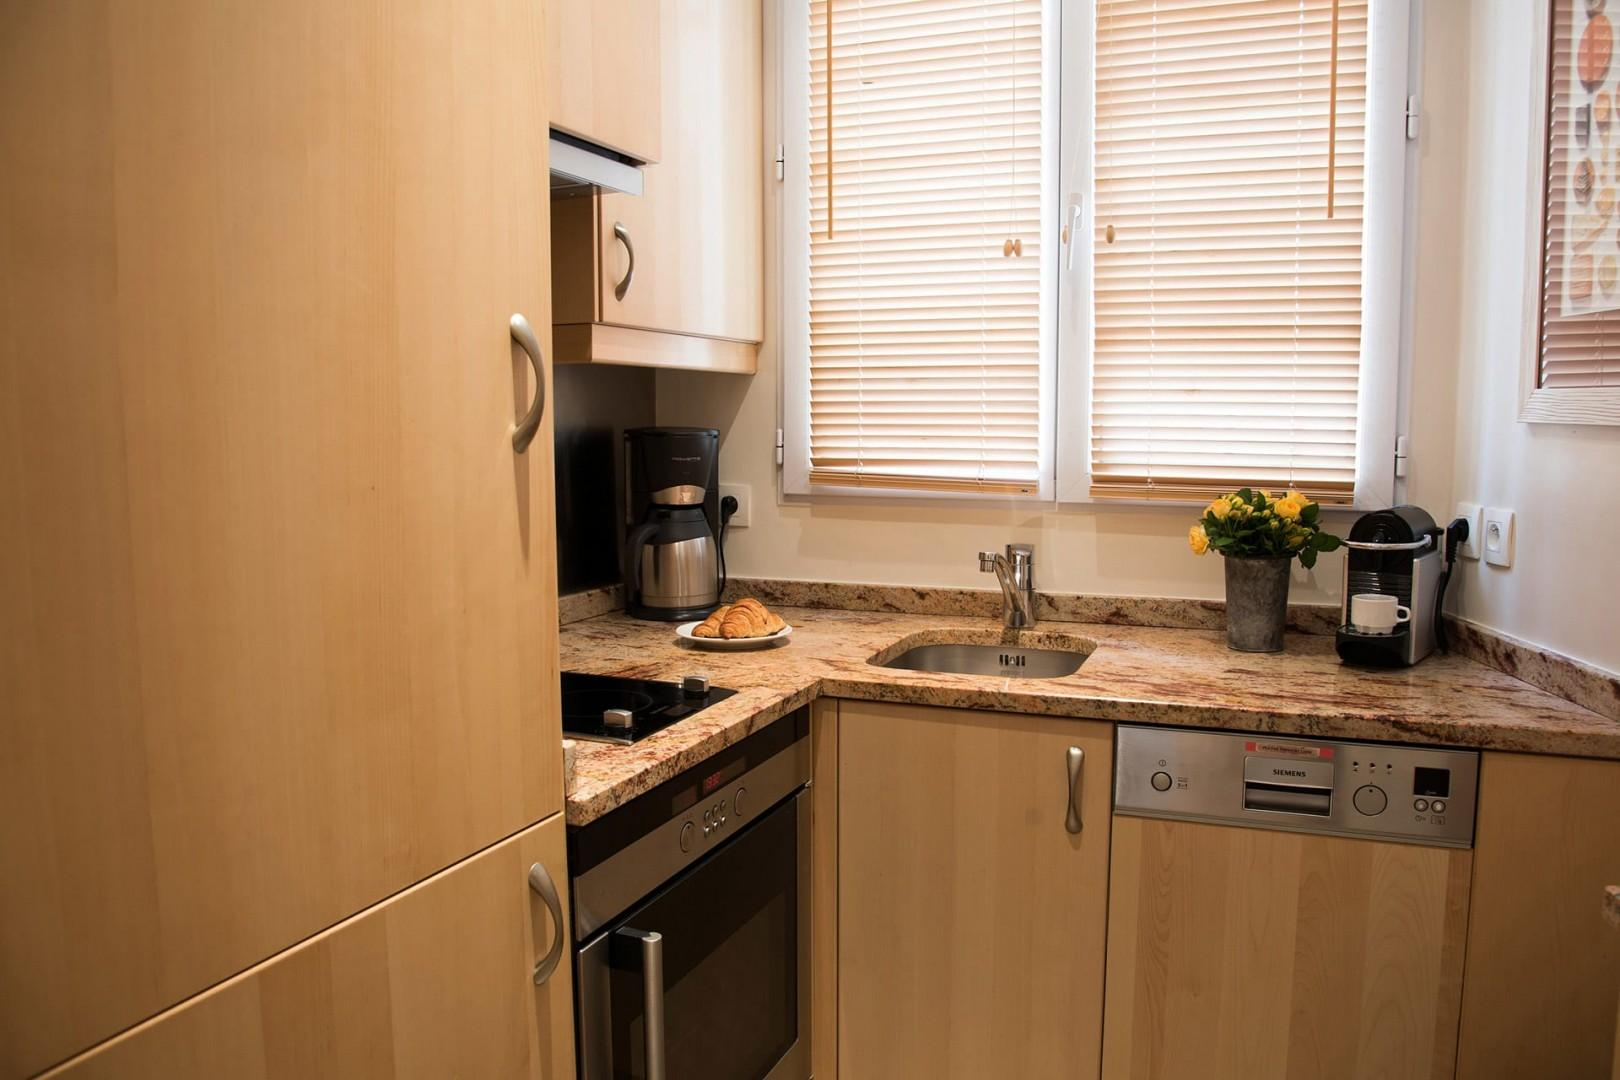 Prepare gourmet meals in the fully equipped, modern kitchen.